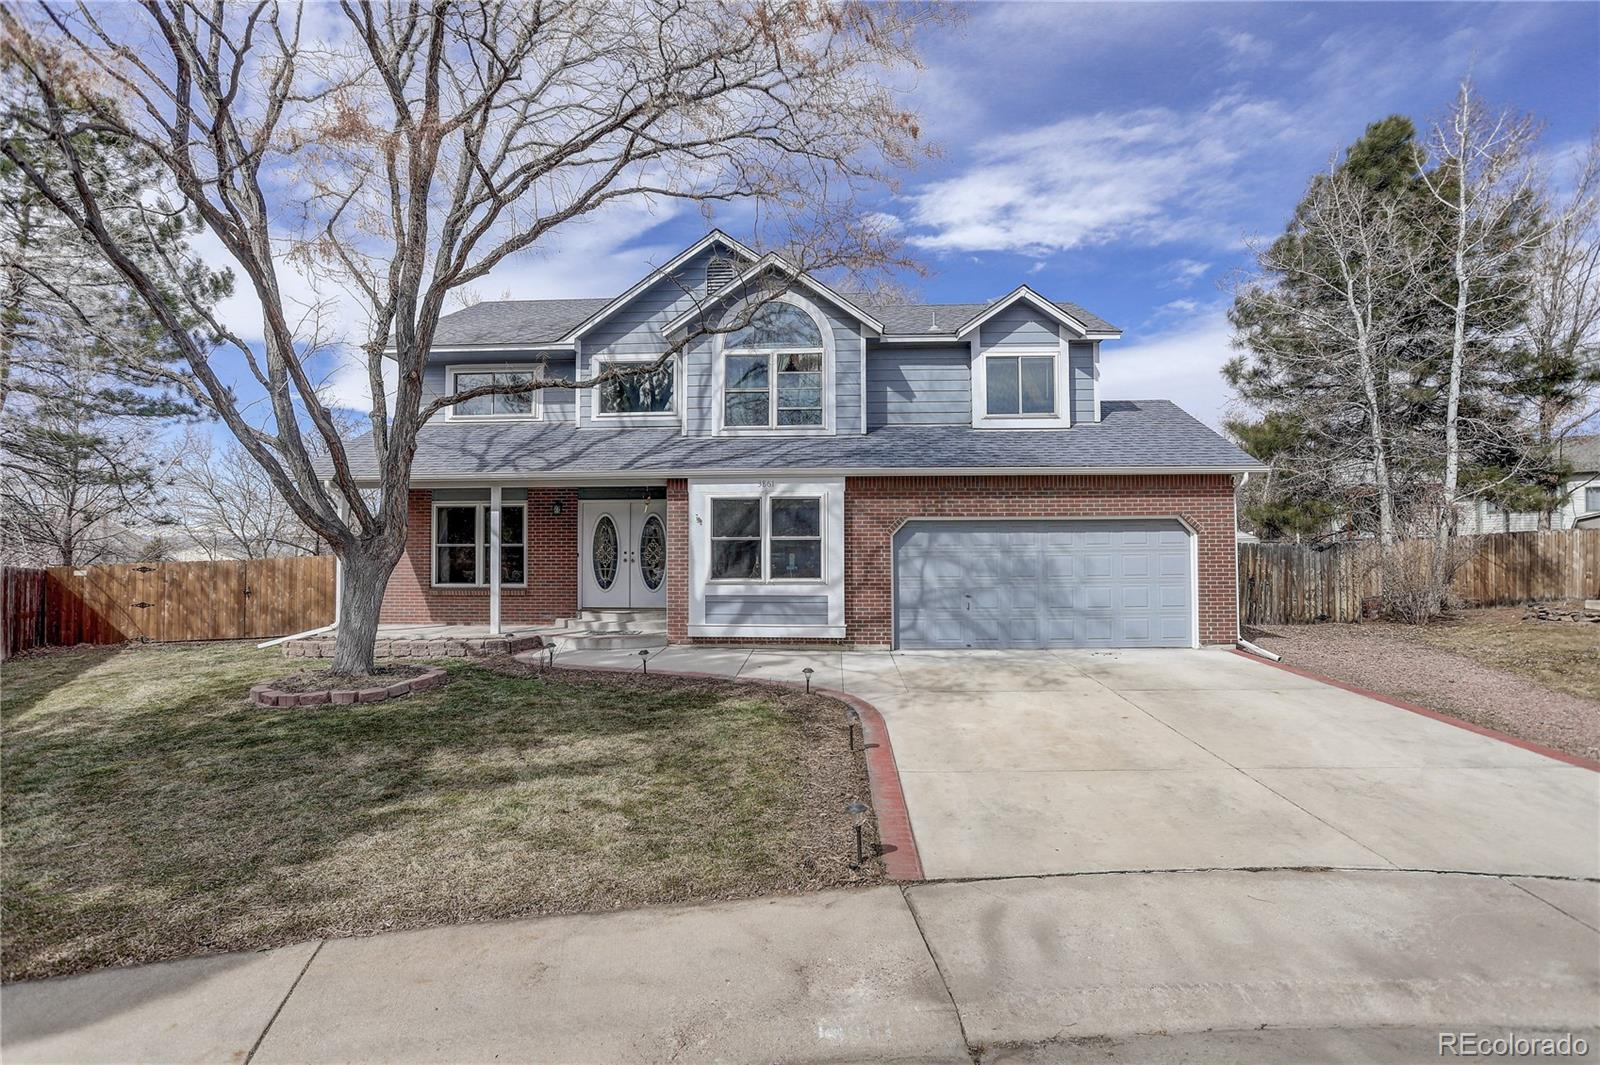 MLS# 2258338 - 2 - 3861 W 98th Place, Westminster, CO 80031